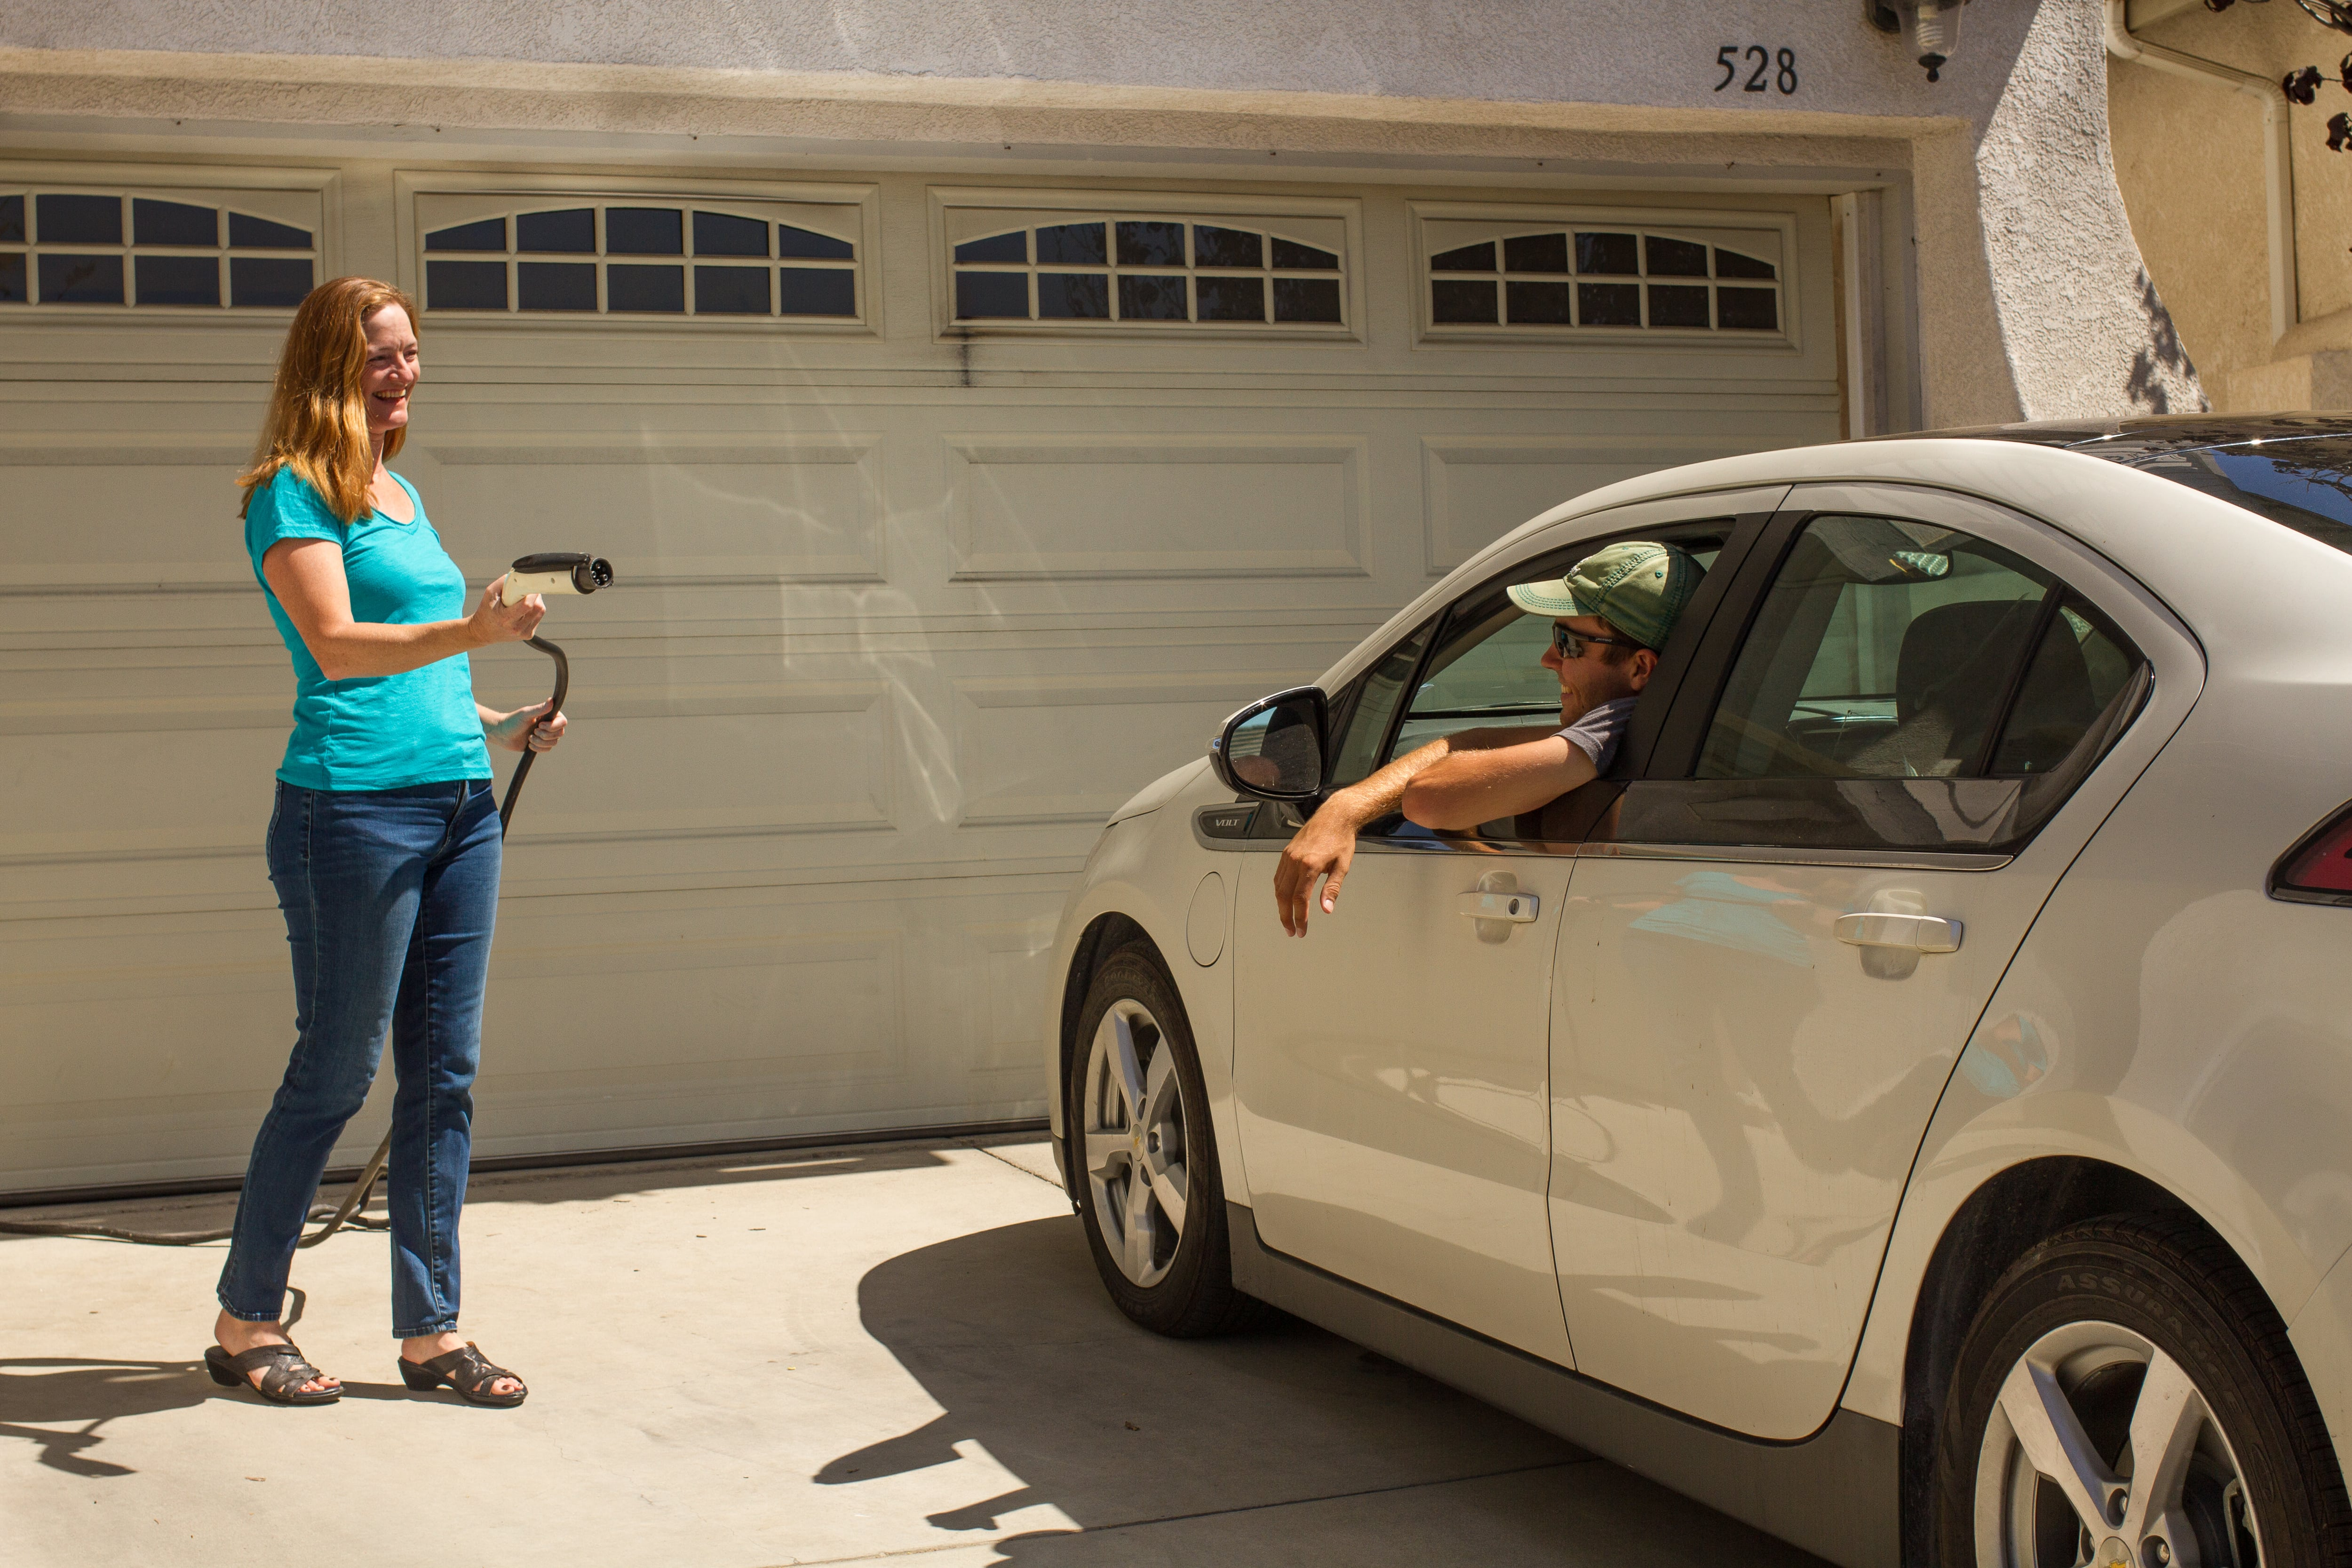 Residential host in Santa Barbara sharing their home electric vehicle charger with an EVmatch user.